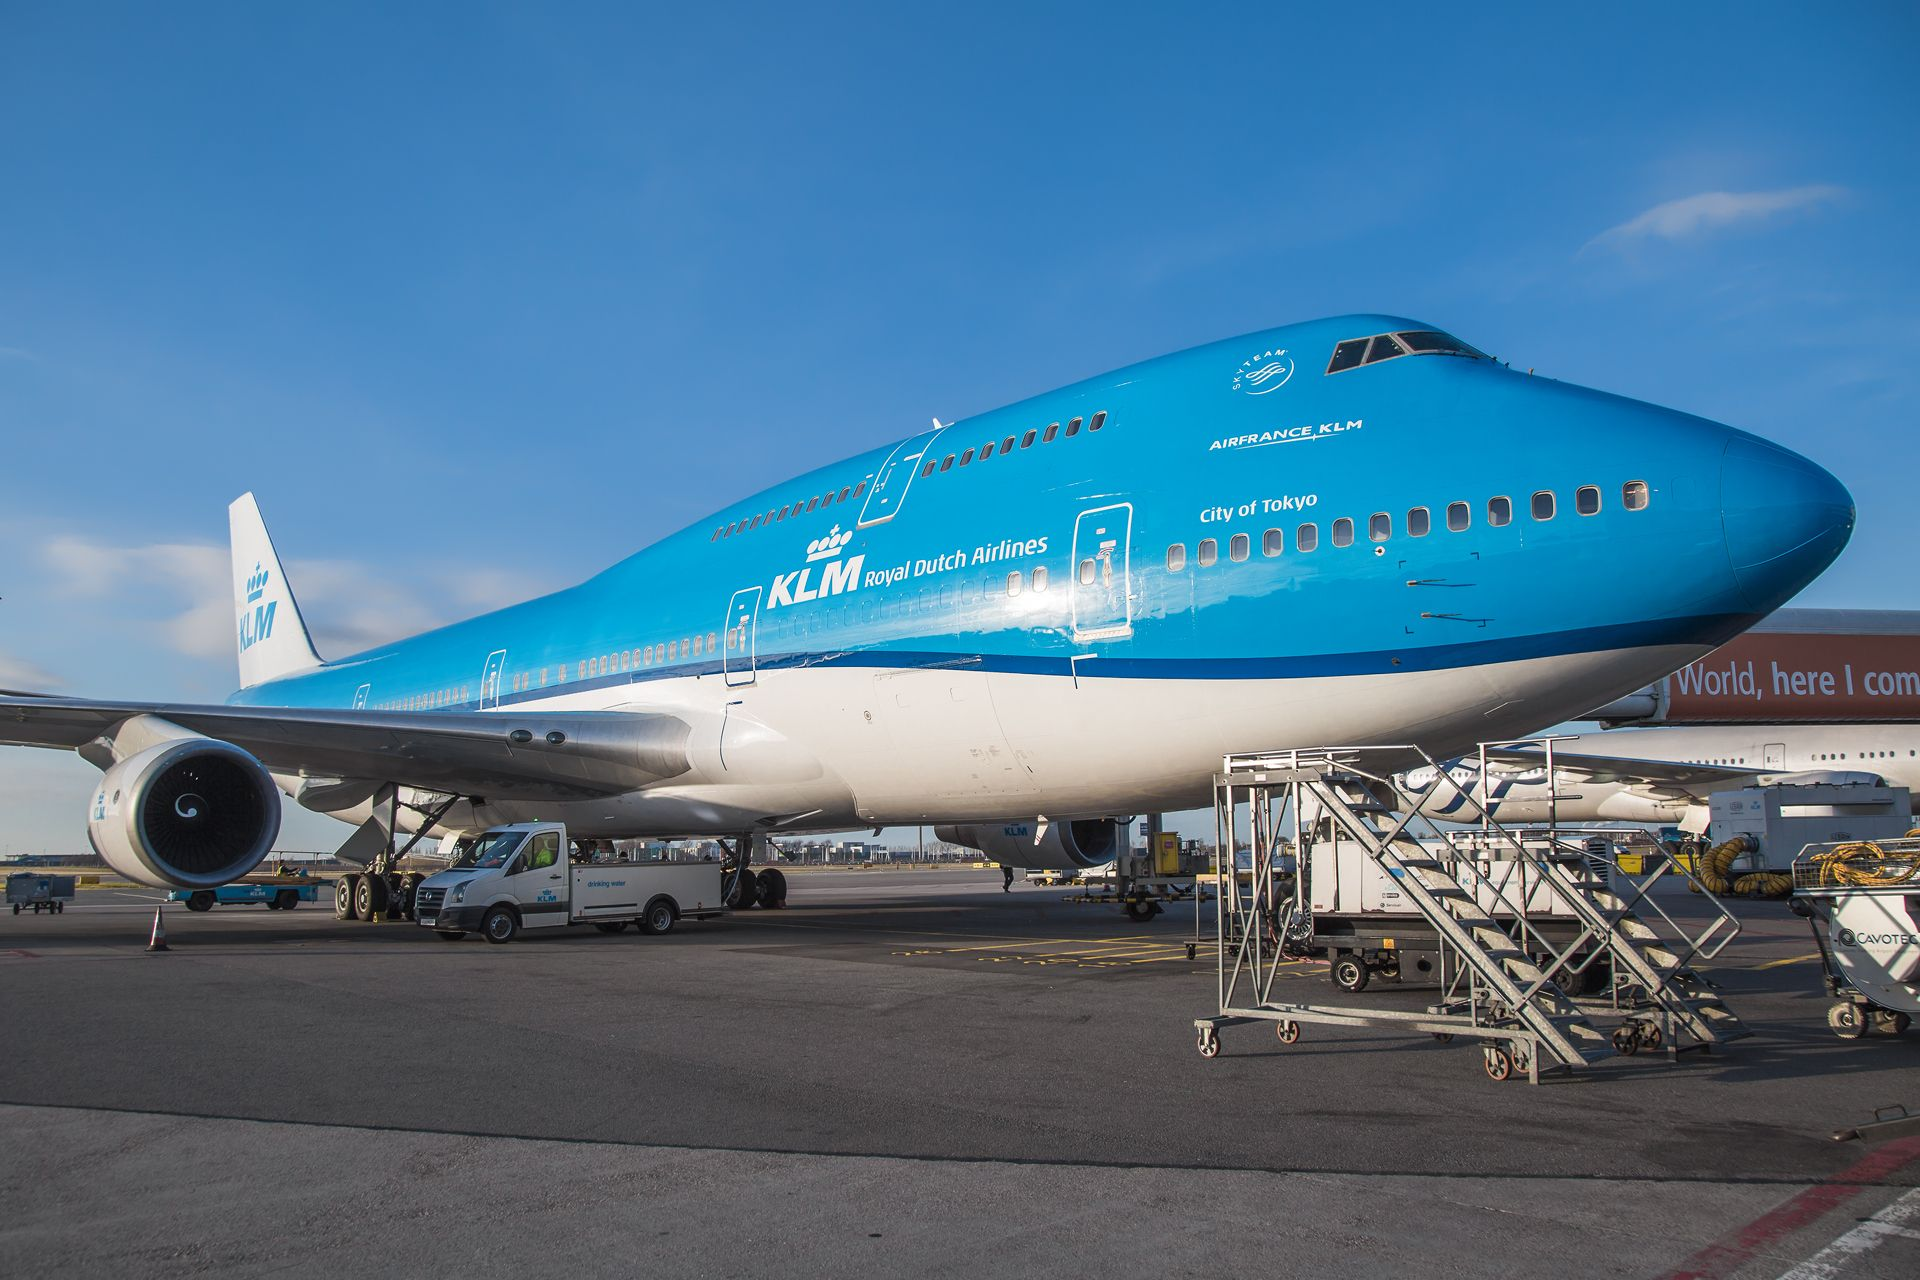 Boeing 747 400 - two-deck transcontinental liner